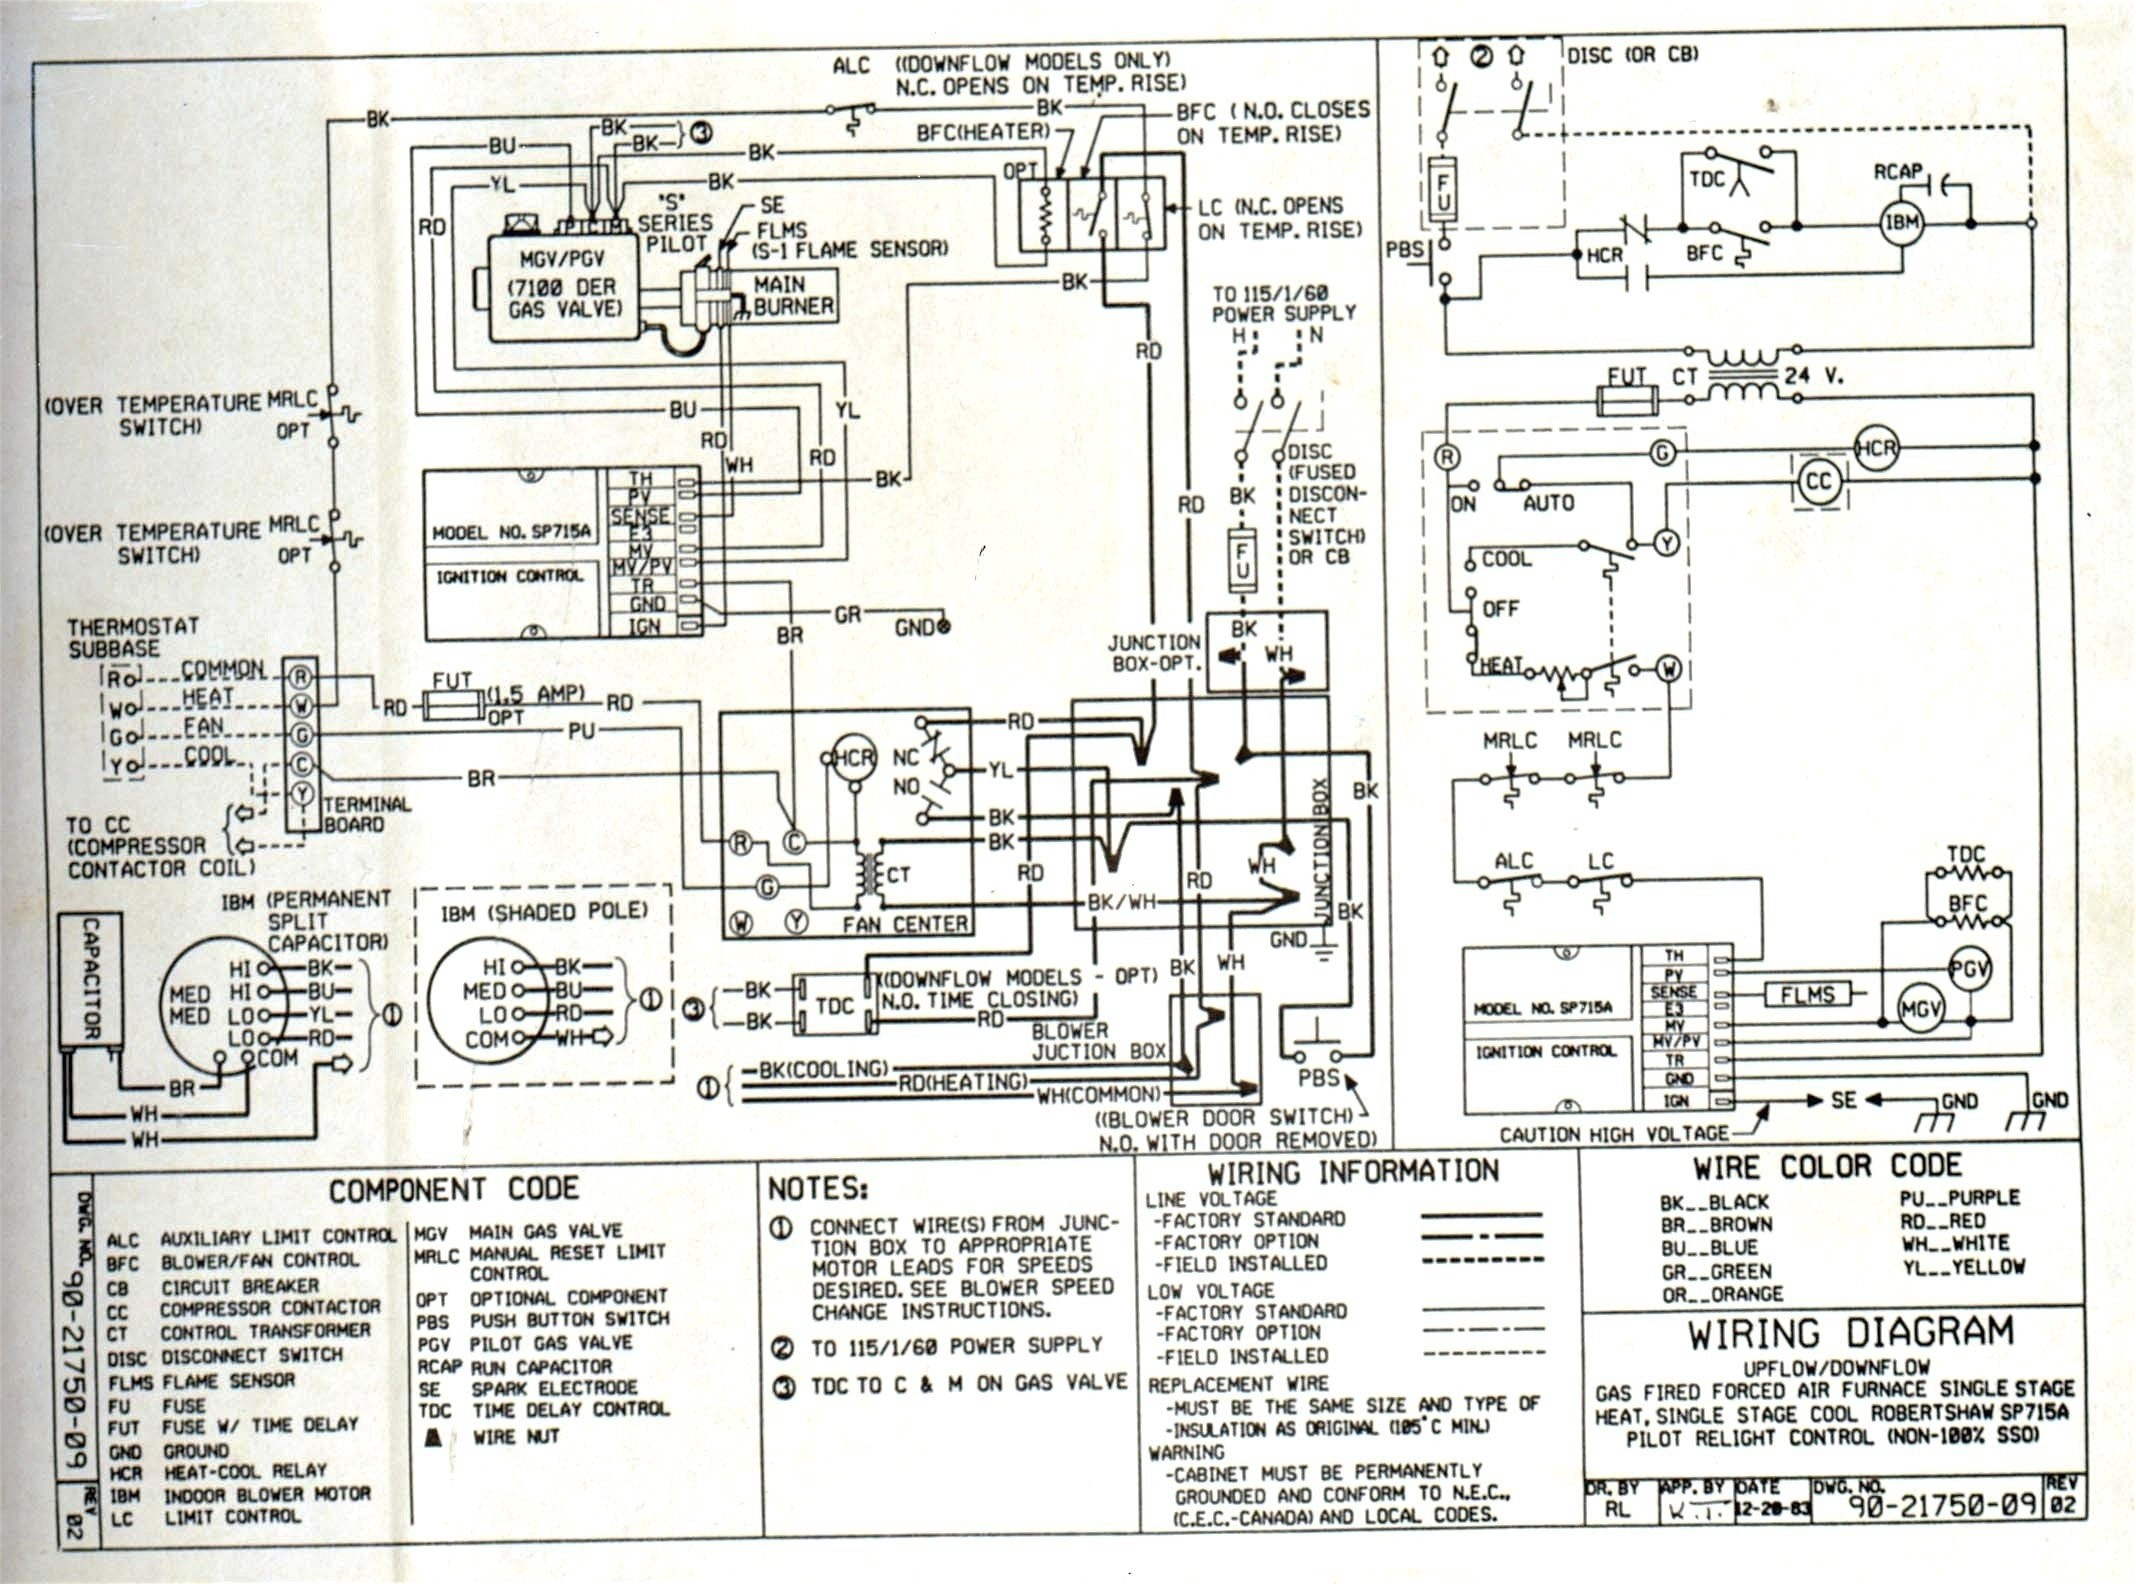 Air Conditioning Wiring Diagram Awesome Wiring Diagram Air Conditioning Pressor Fresh Wiring Diagram Ac Best